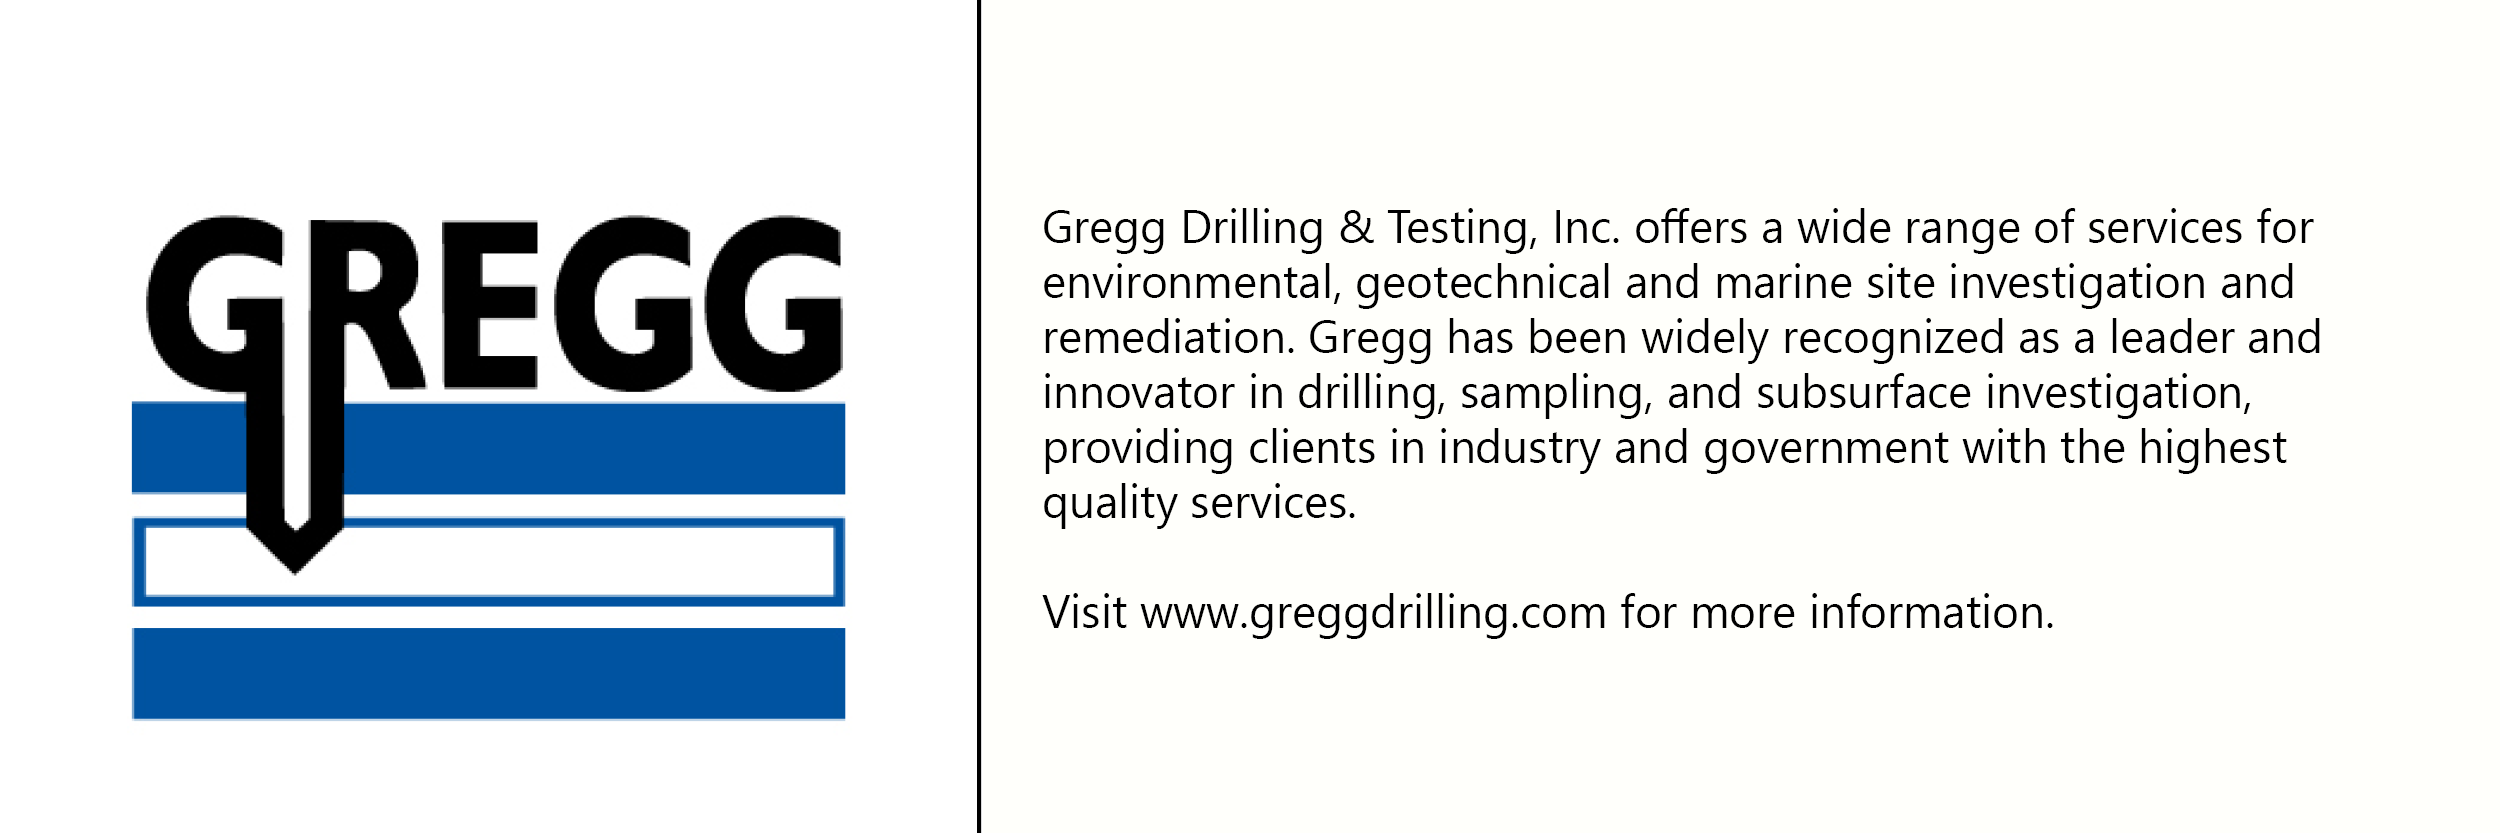 Gregg Engineering logo with description of company